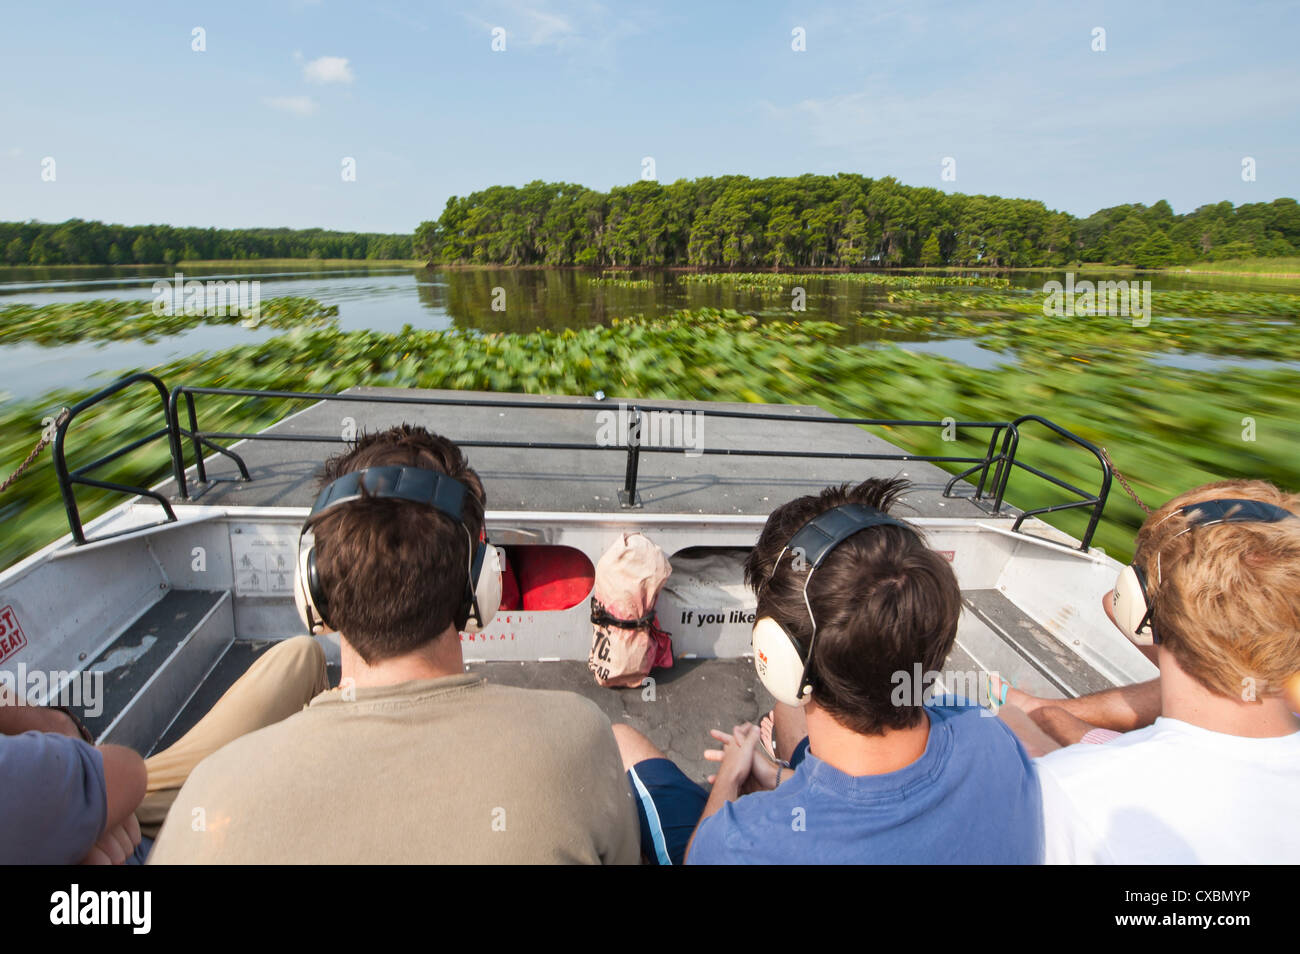 Air boating in the Everglades, UNESCO World Heritage Site, Florida, United States of America, North America - Stock Image